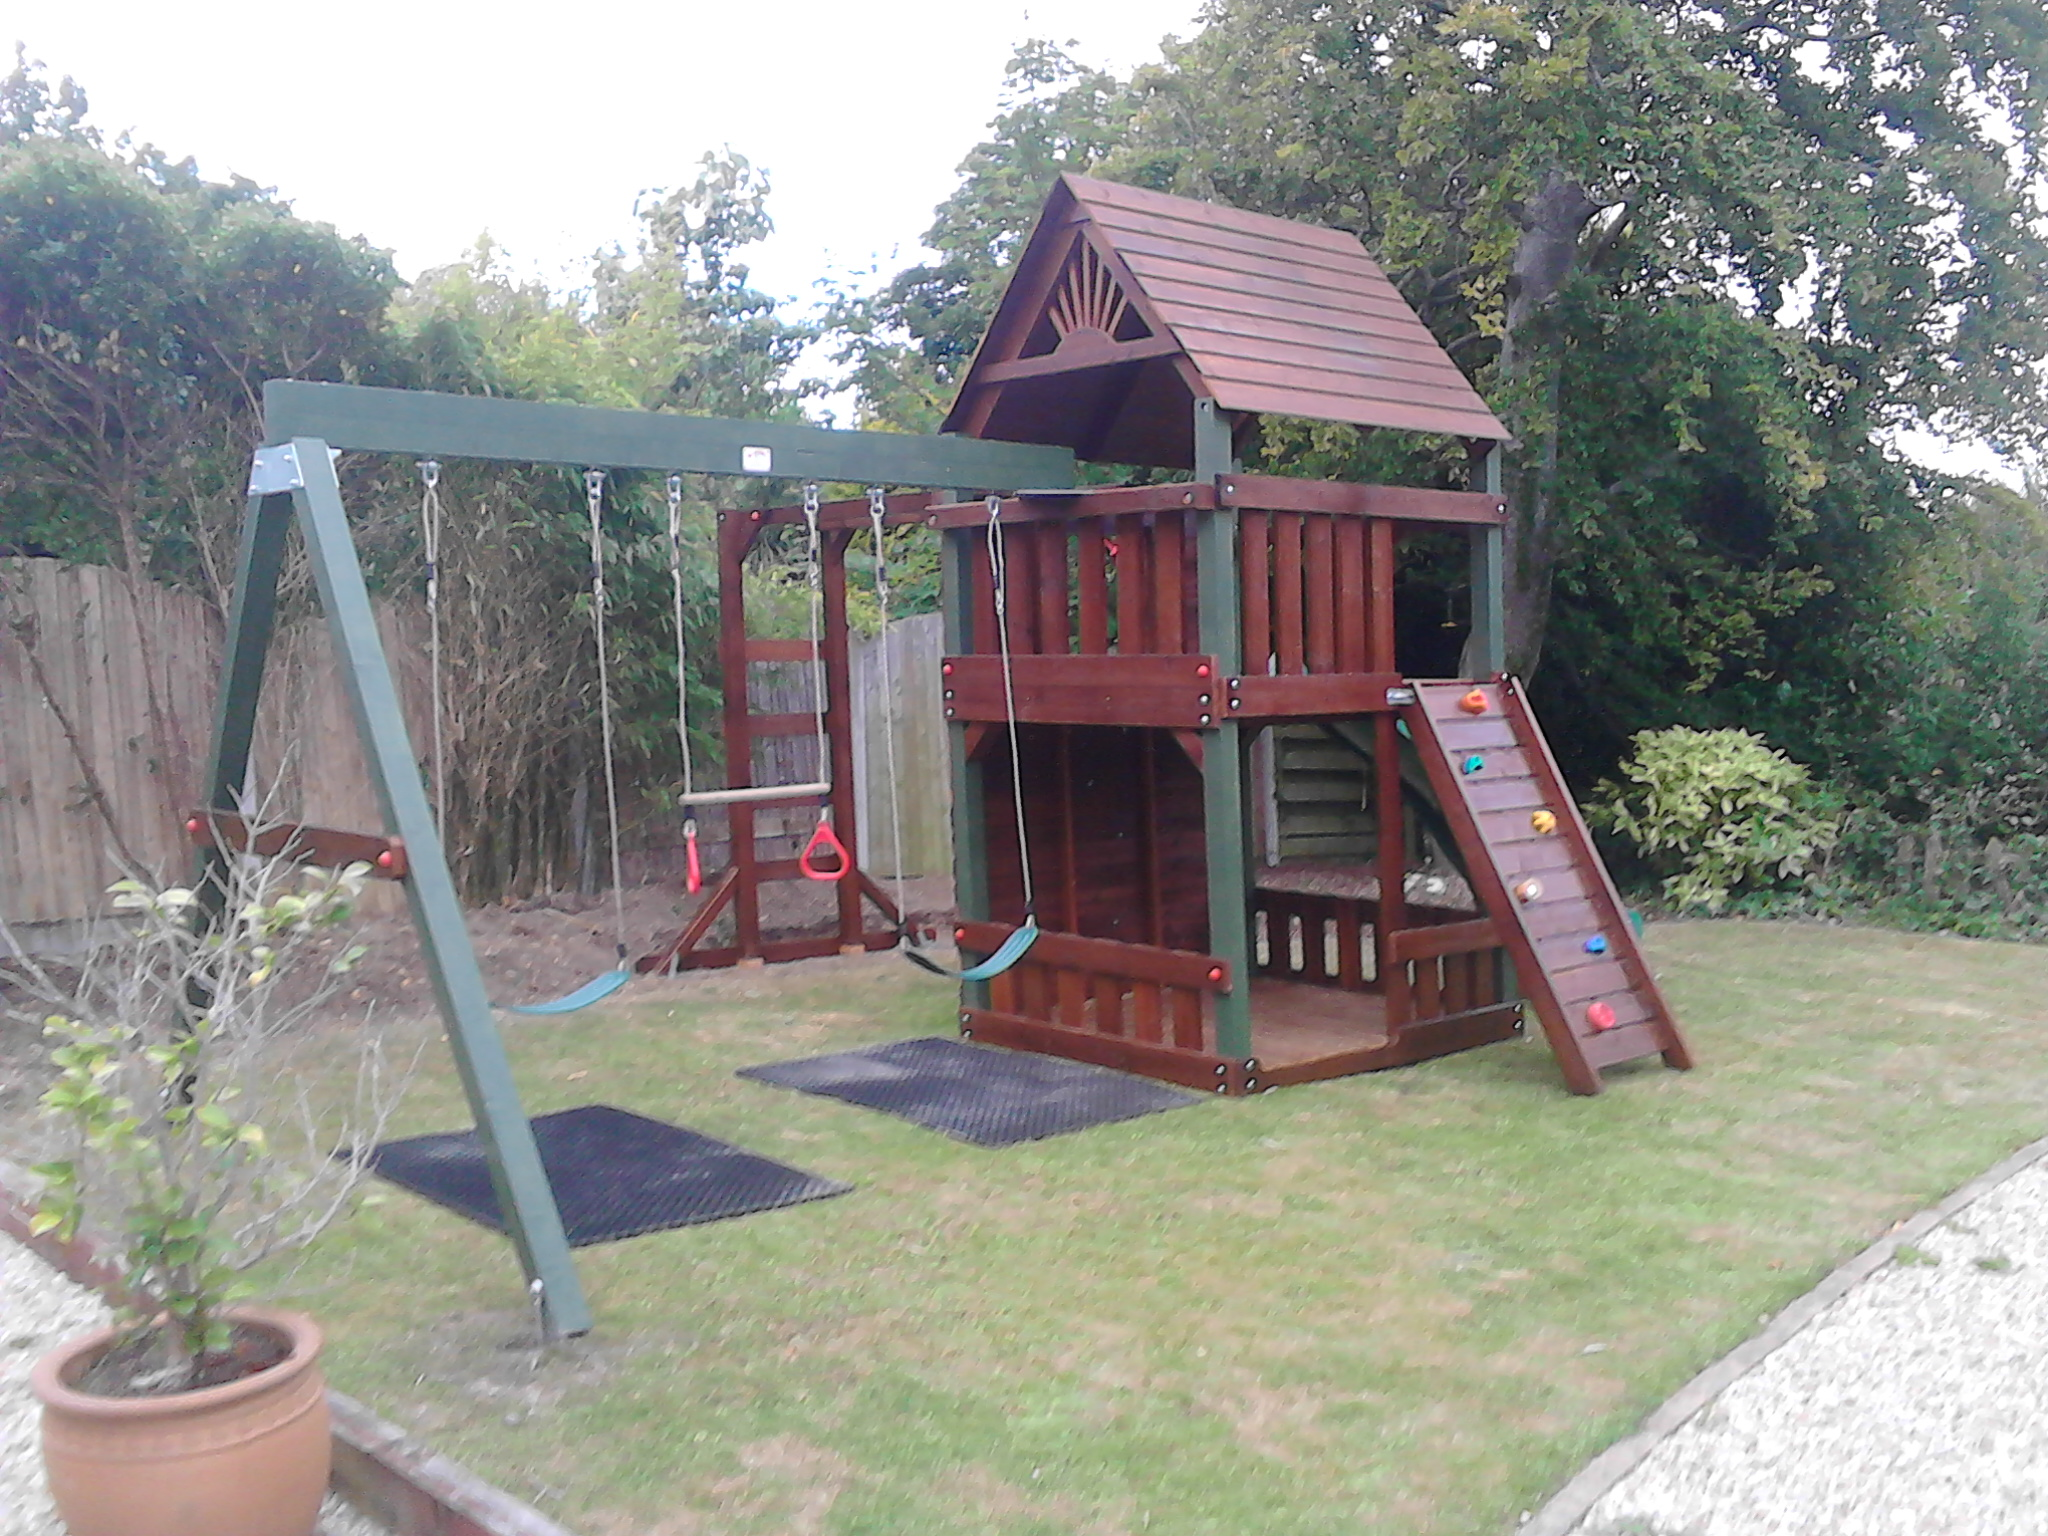 rock wall,monkey bars, swings , 2 story tree house